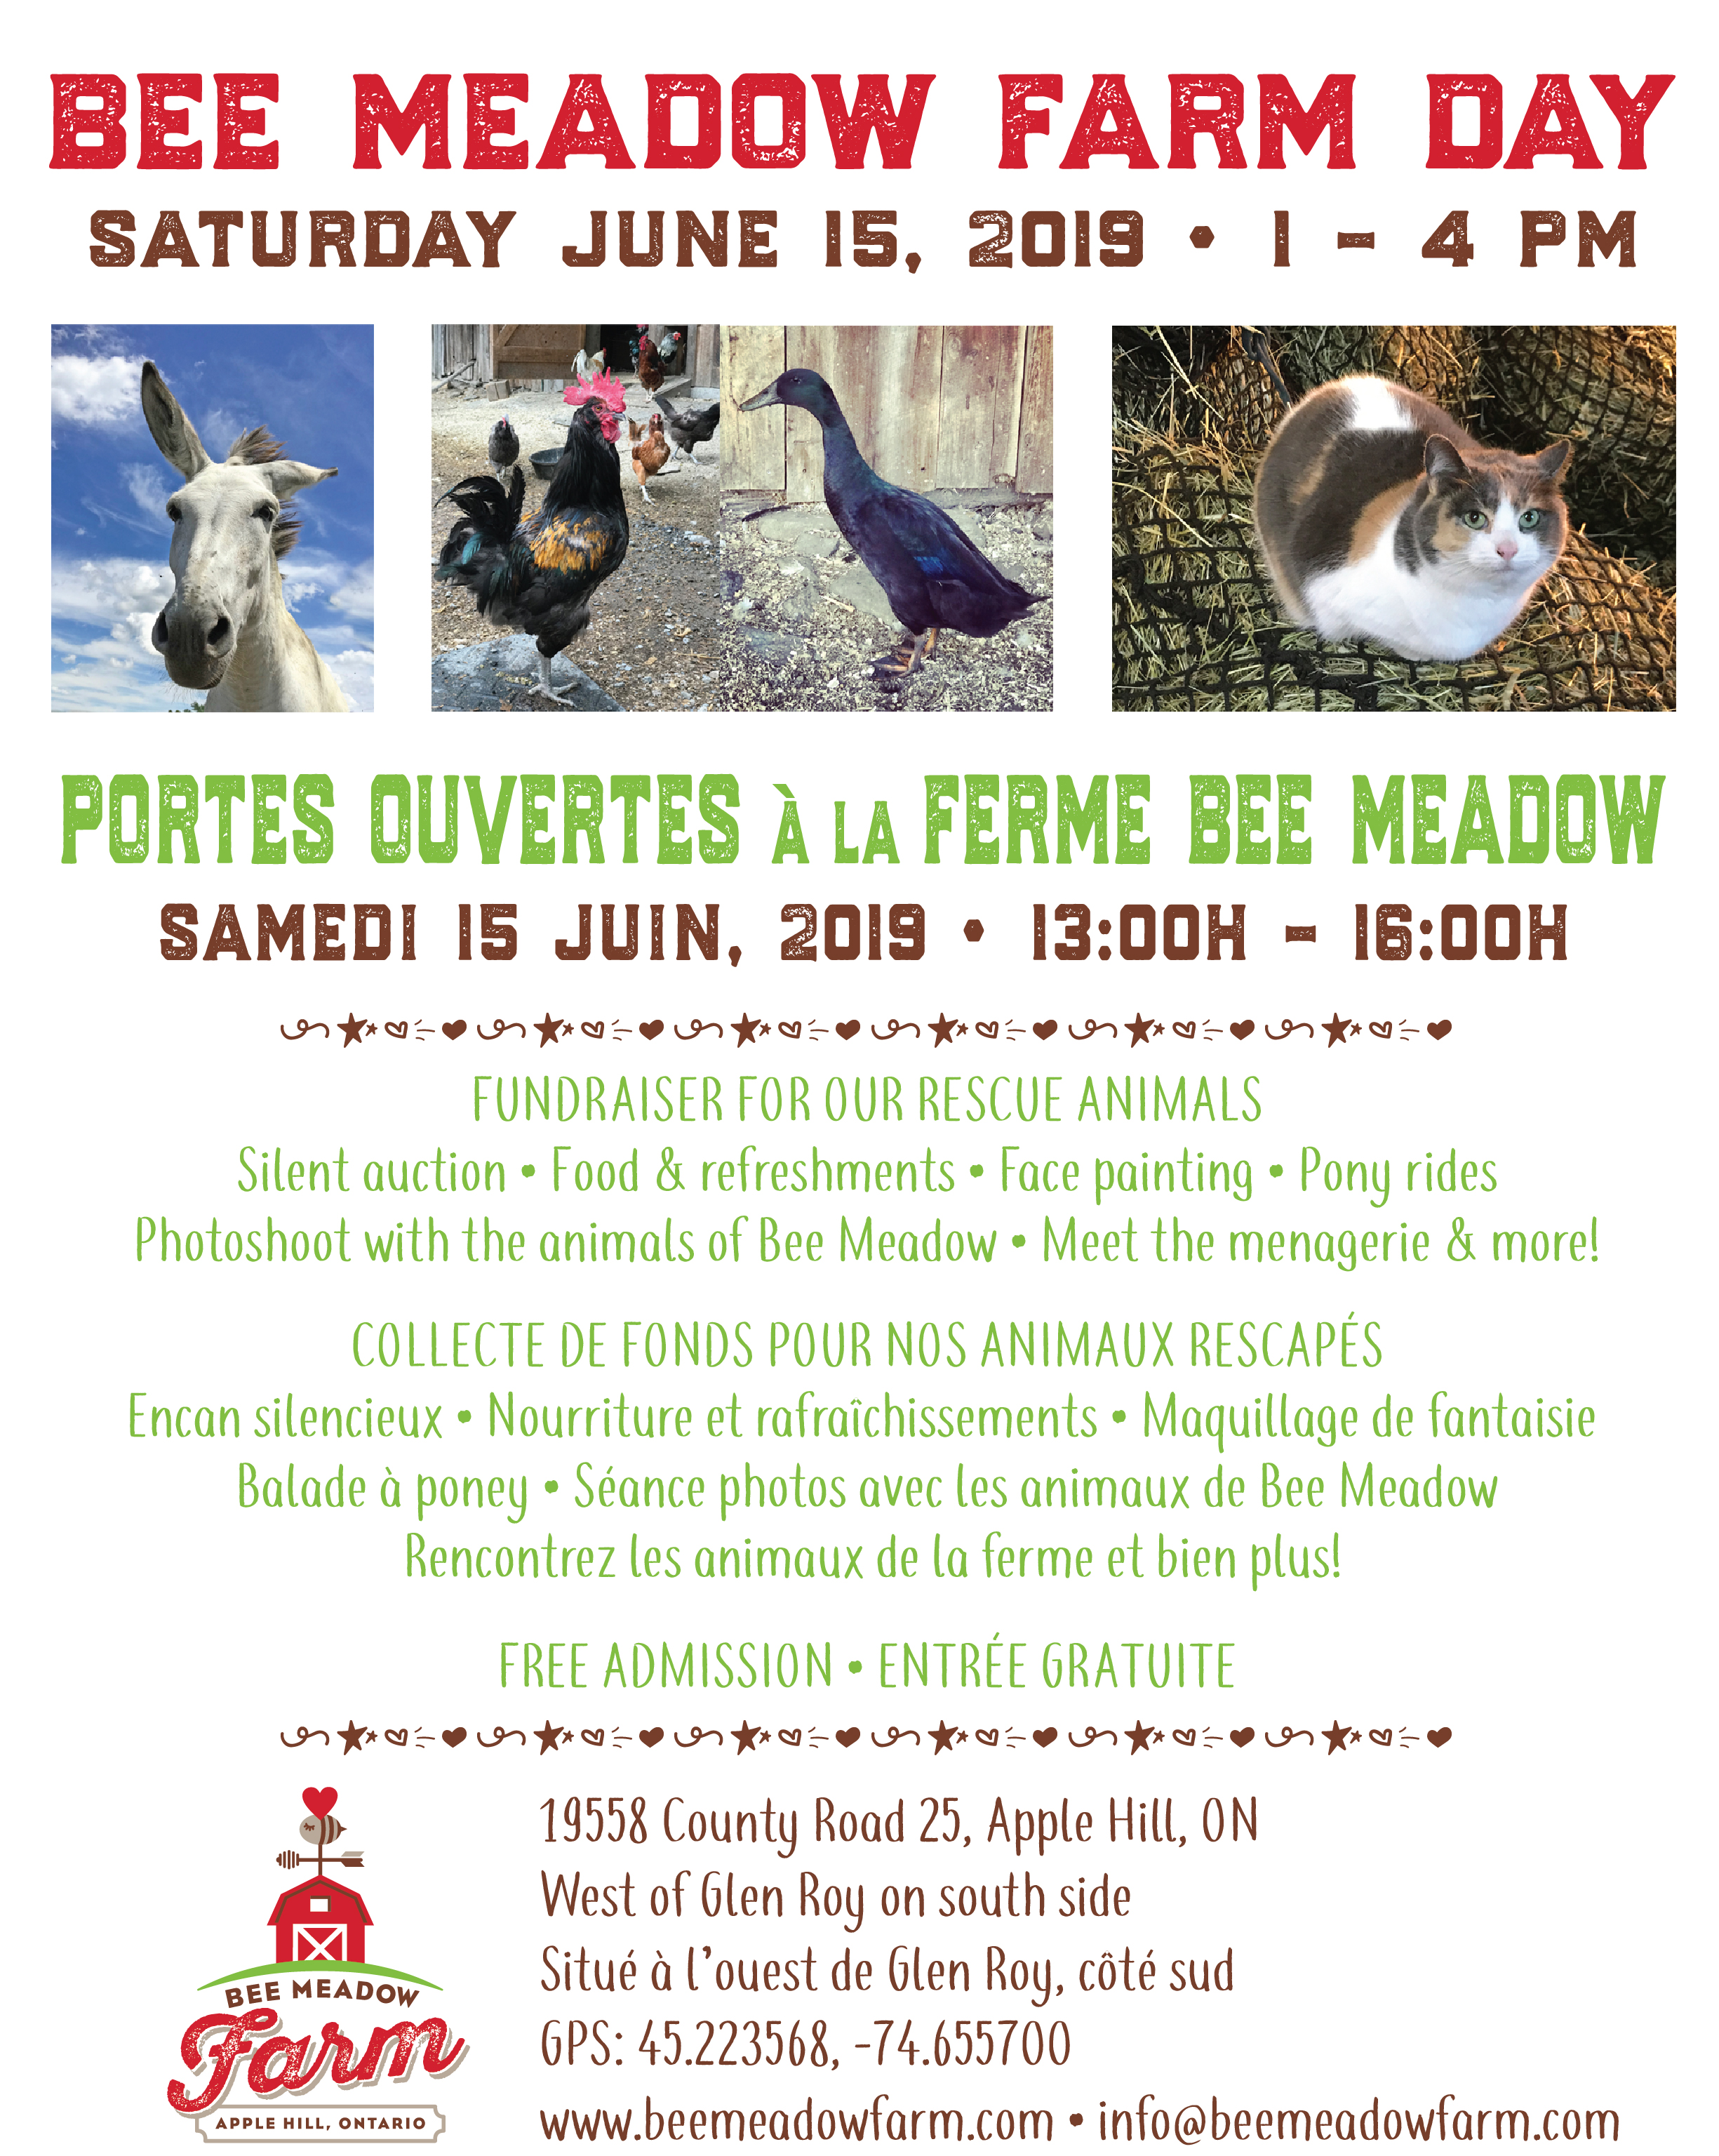 Bee Meadow Farm Day 2019 Flyer.jpg